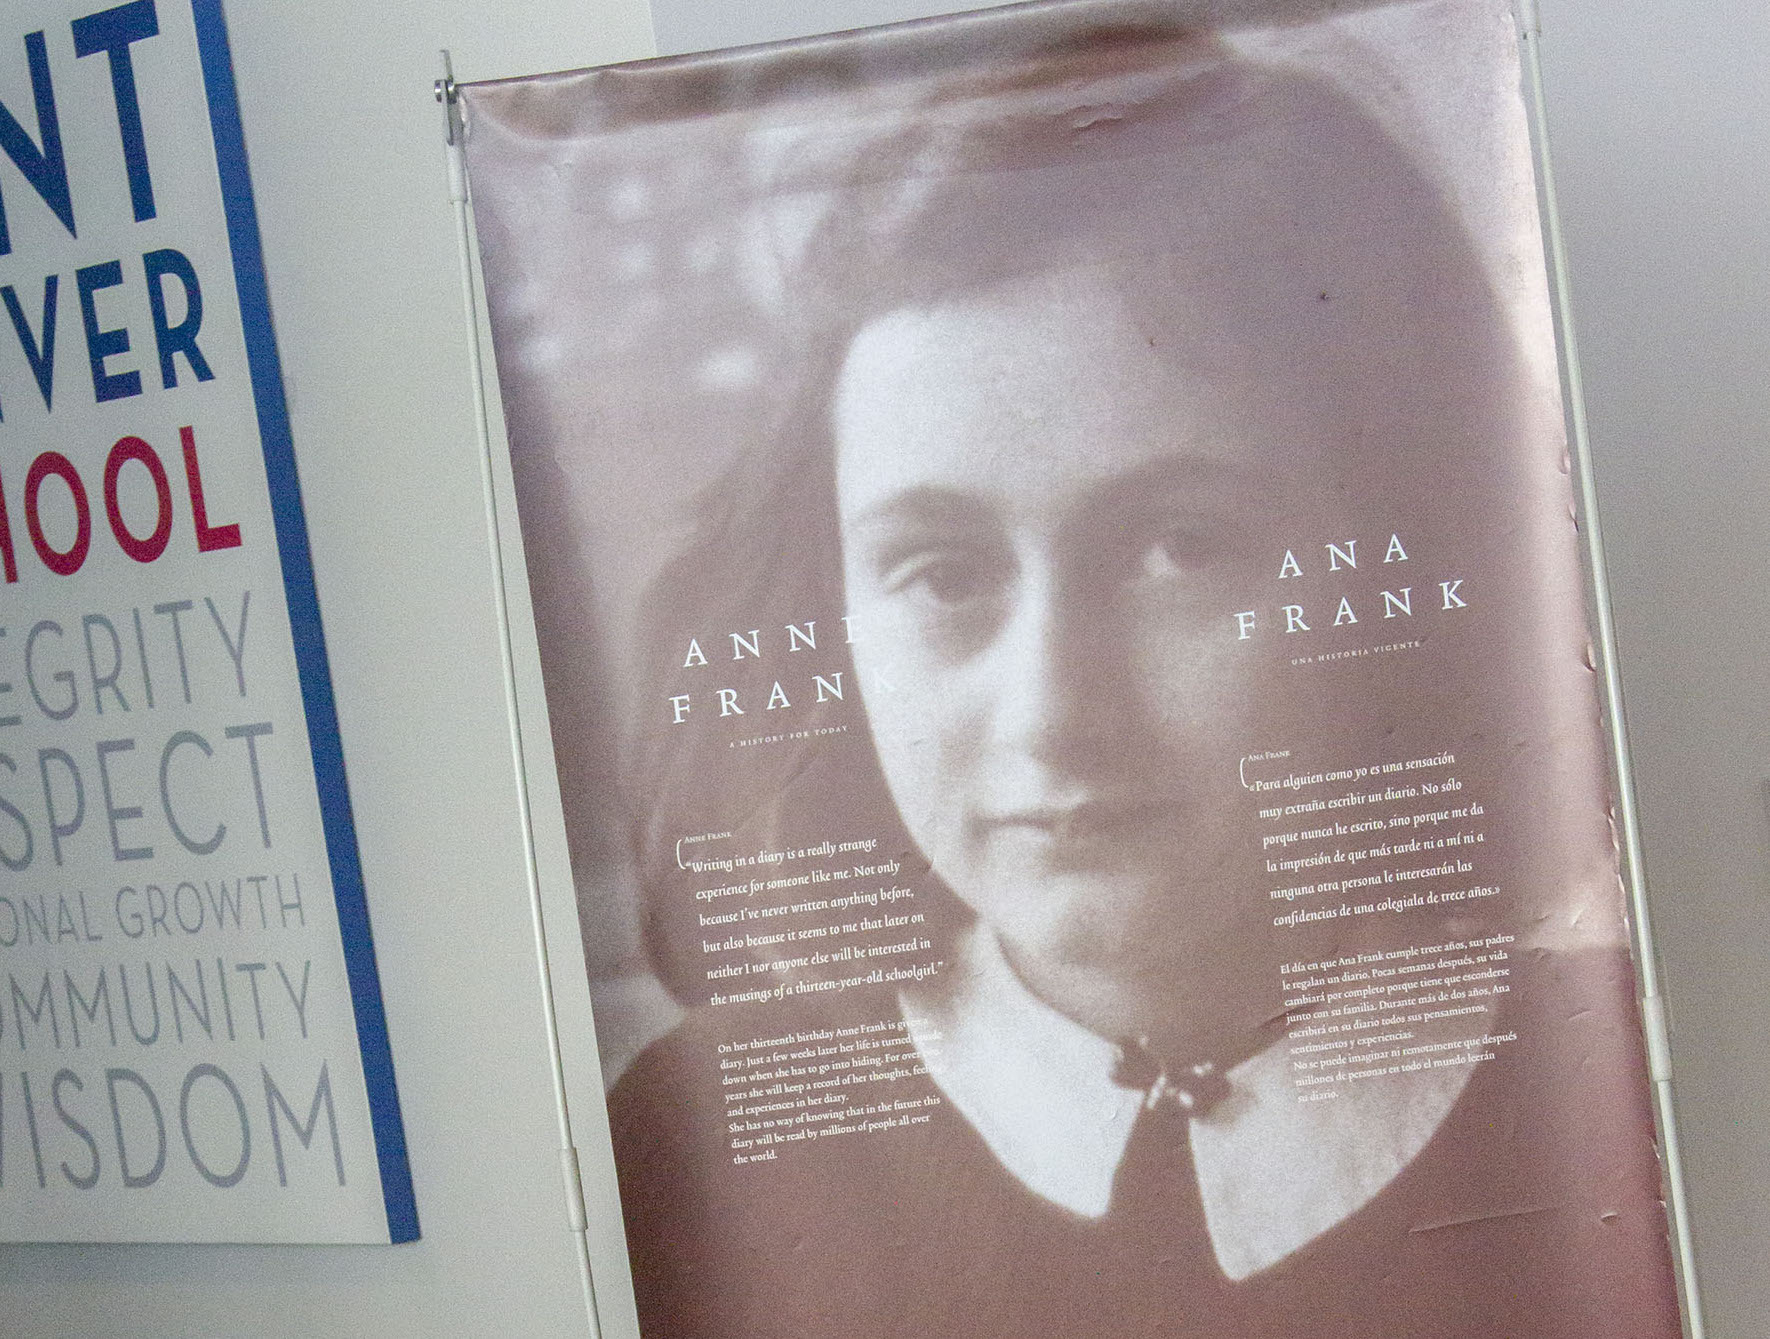 Anne Frank's legacy lives on 90 years after her birth